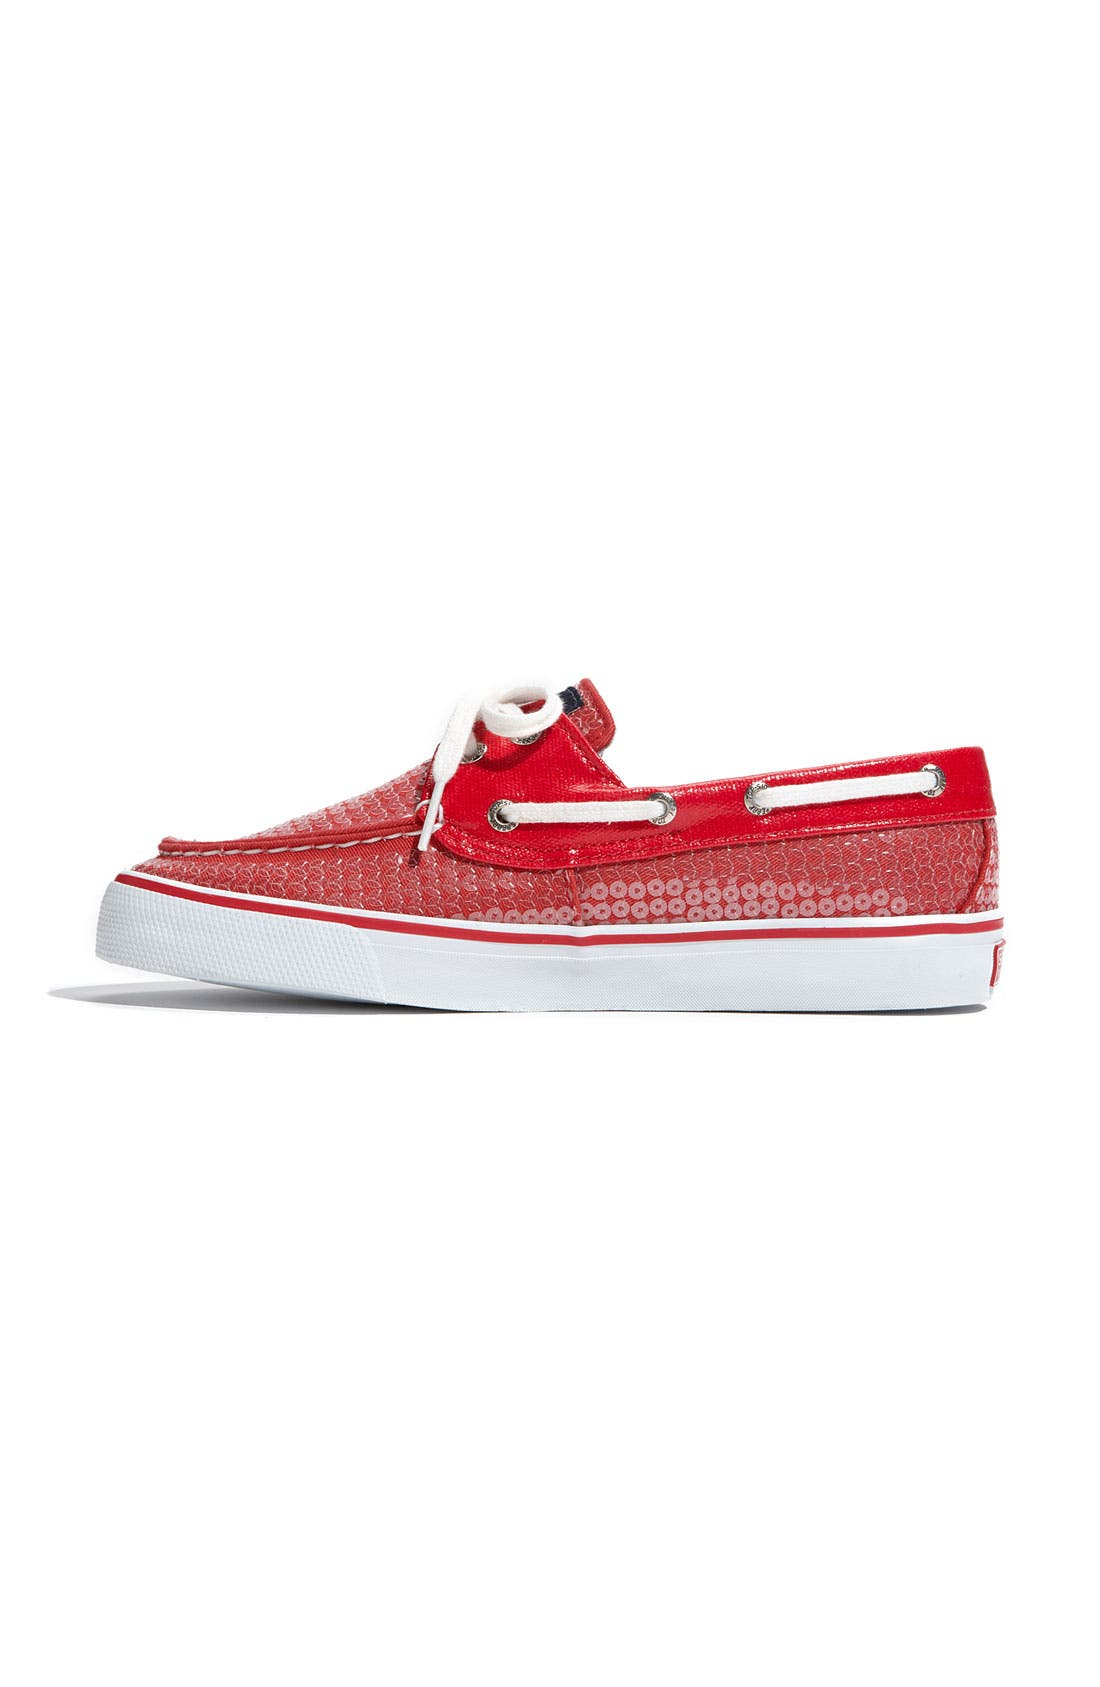 Top-Sider<sup>®</sup> 'Bahama' Sequined Boat Shoe,                             Alternate thumbnail 116, color,